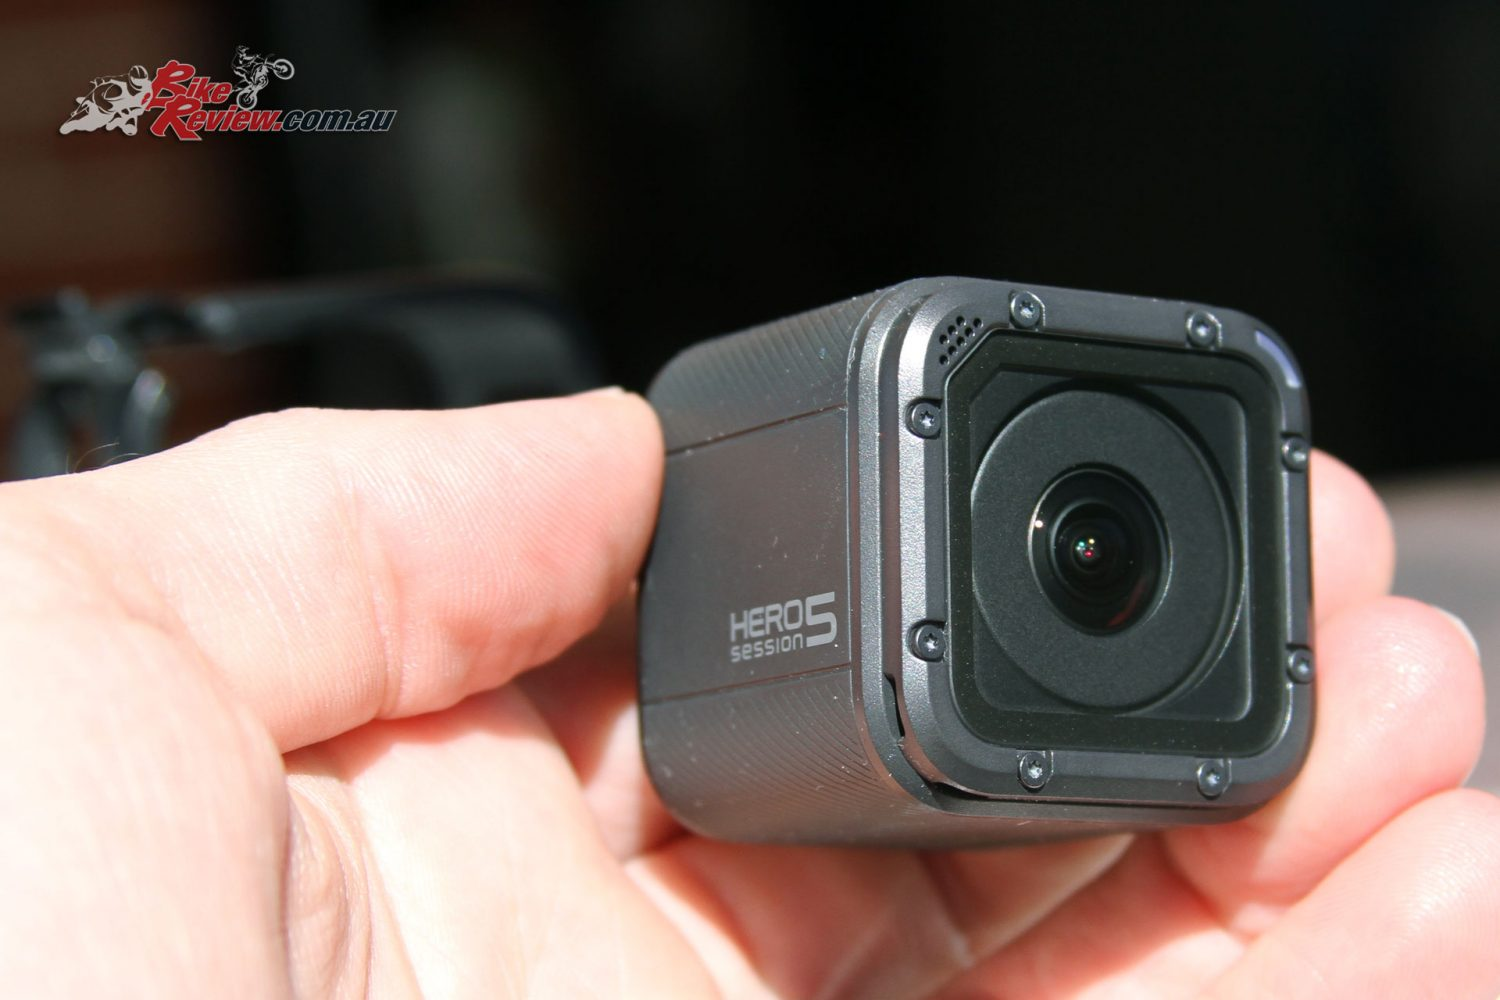 GoPro's top-end small form factor sports offering, the Hero5 Session